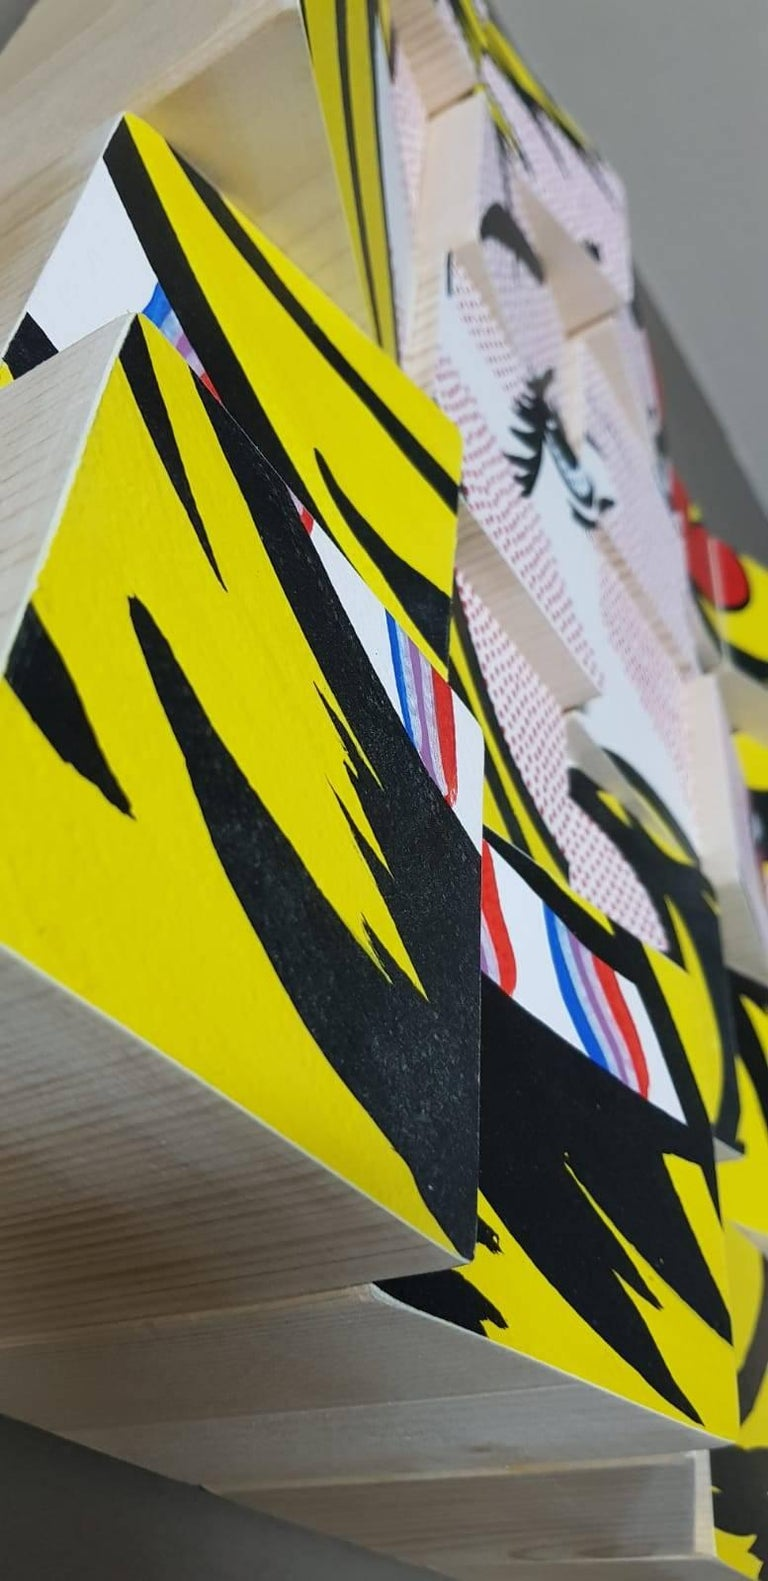 My Girl tribute to Roy Lichtenstein Acrylic Paint on Cotton Paper, Wooden Blocks For Sale 3